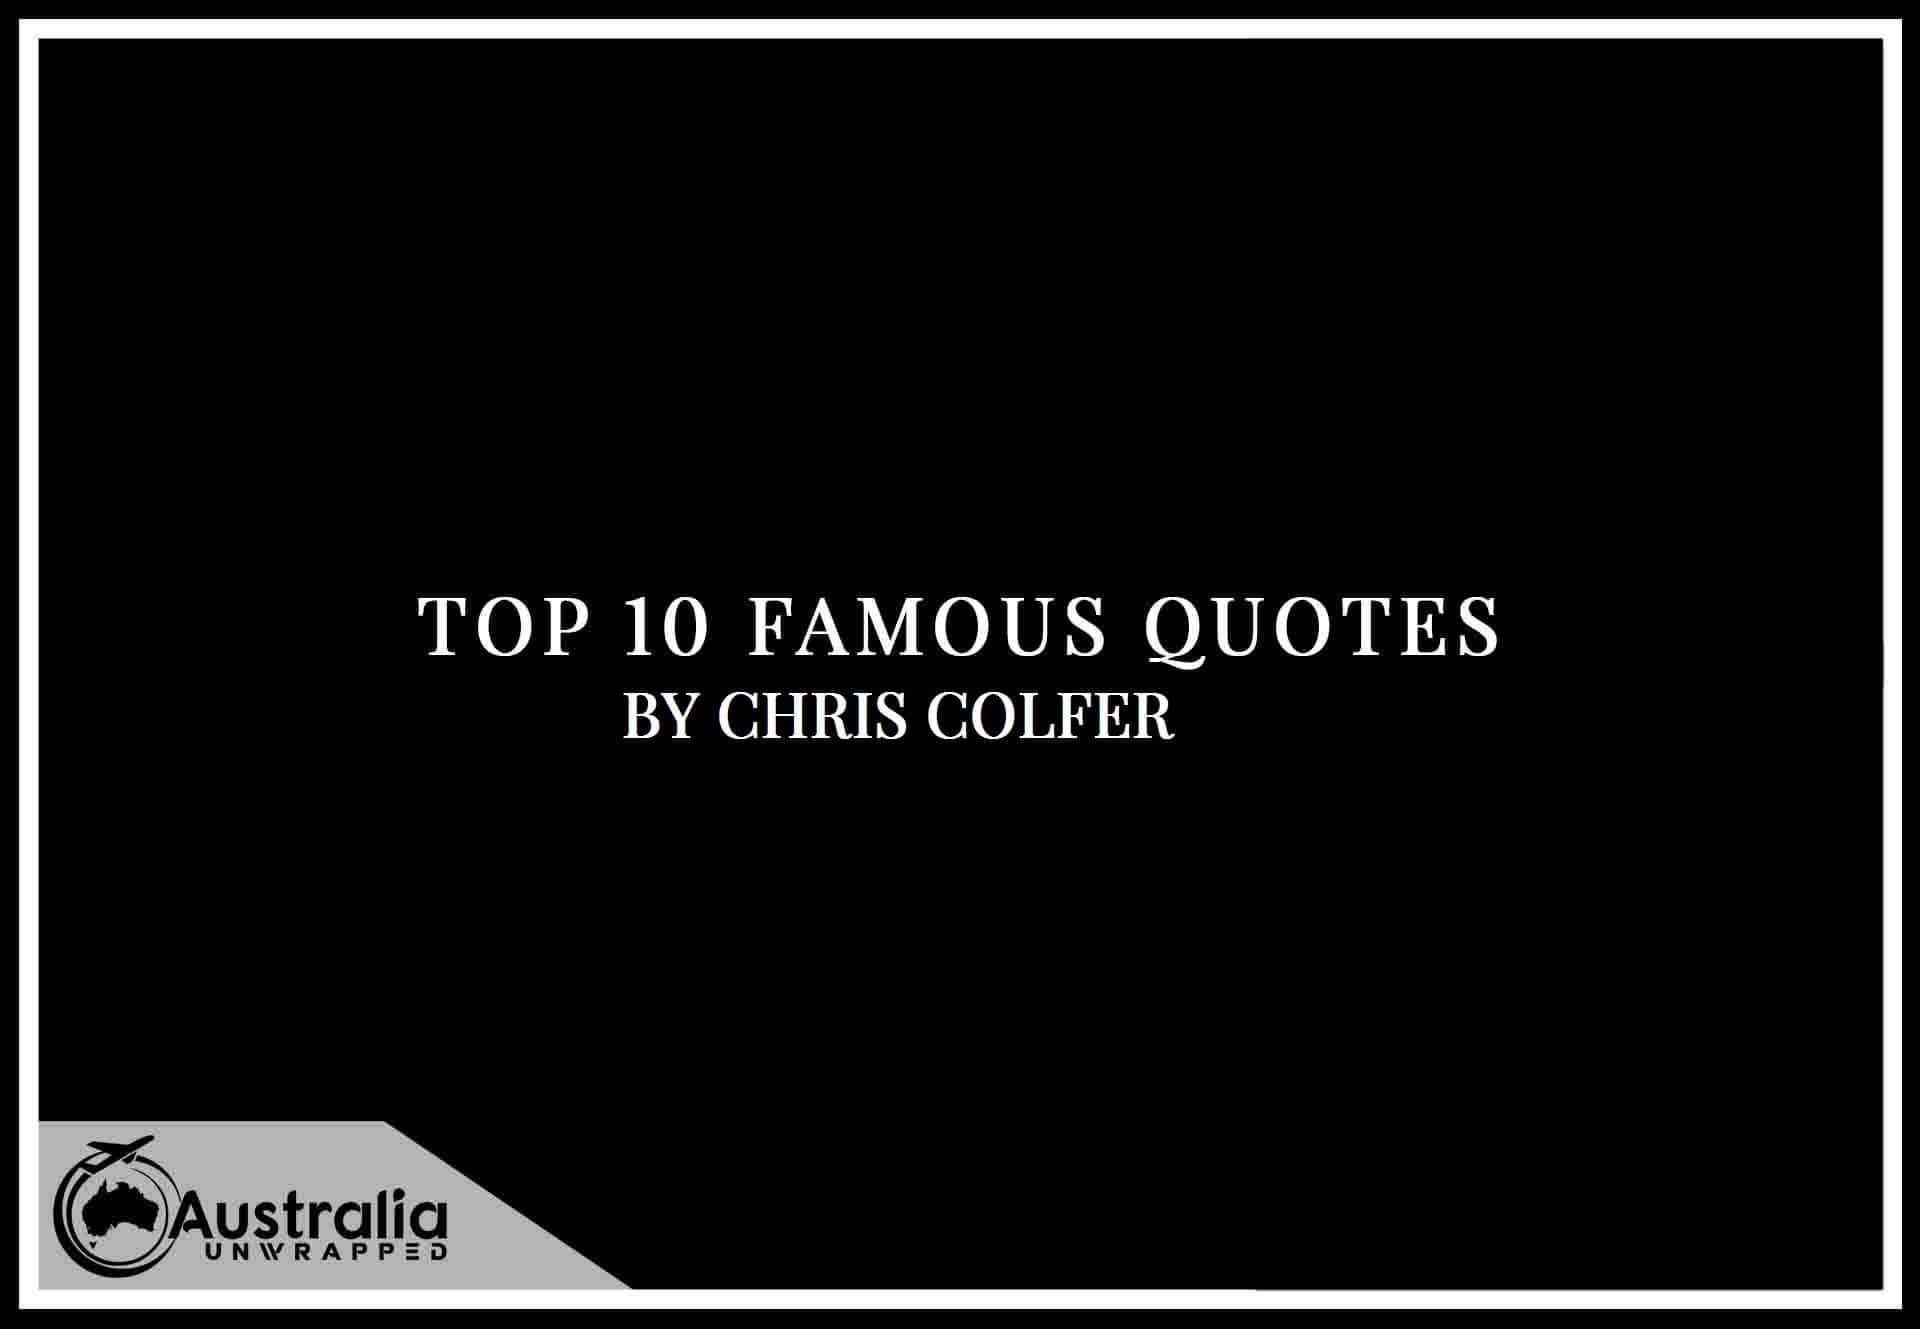 Chris Colfer's Top 10 Popular and Famous Quotes